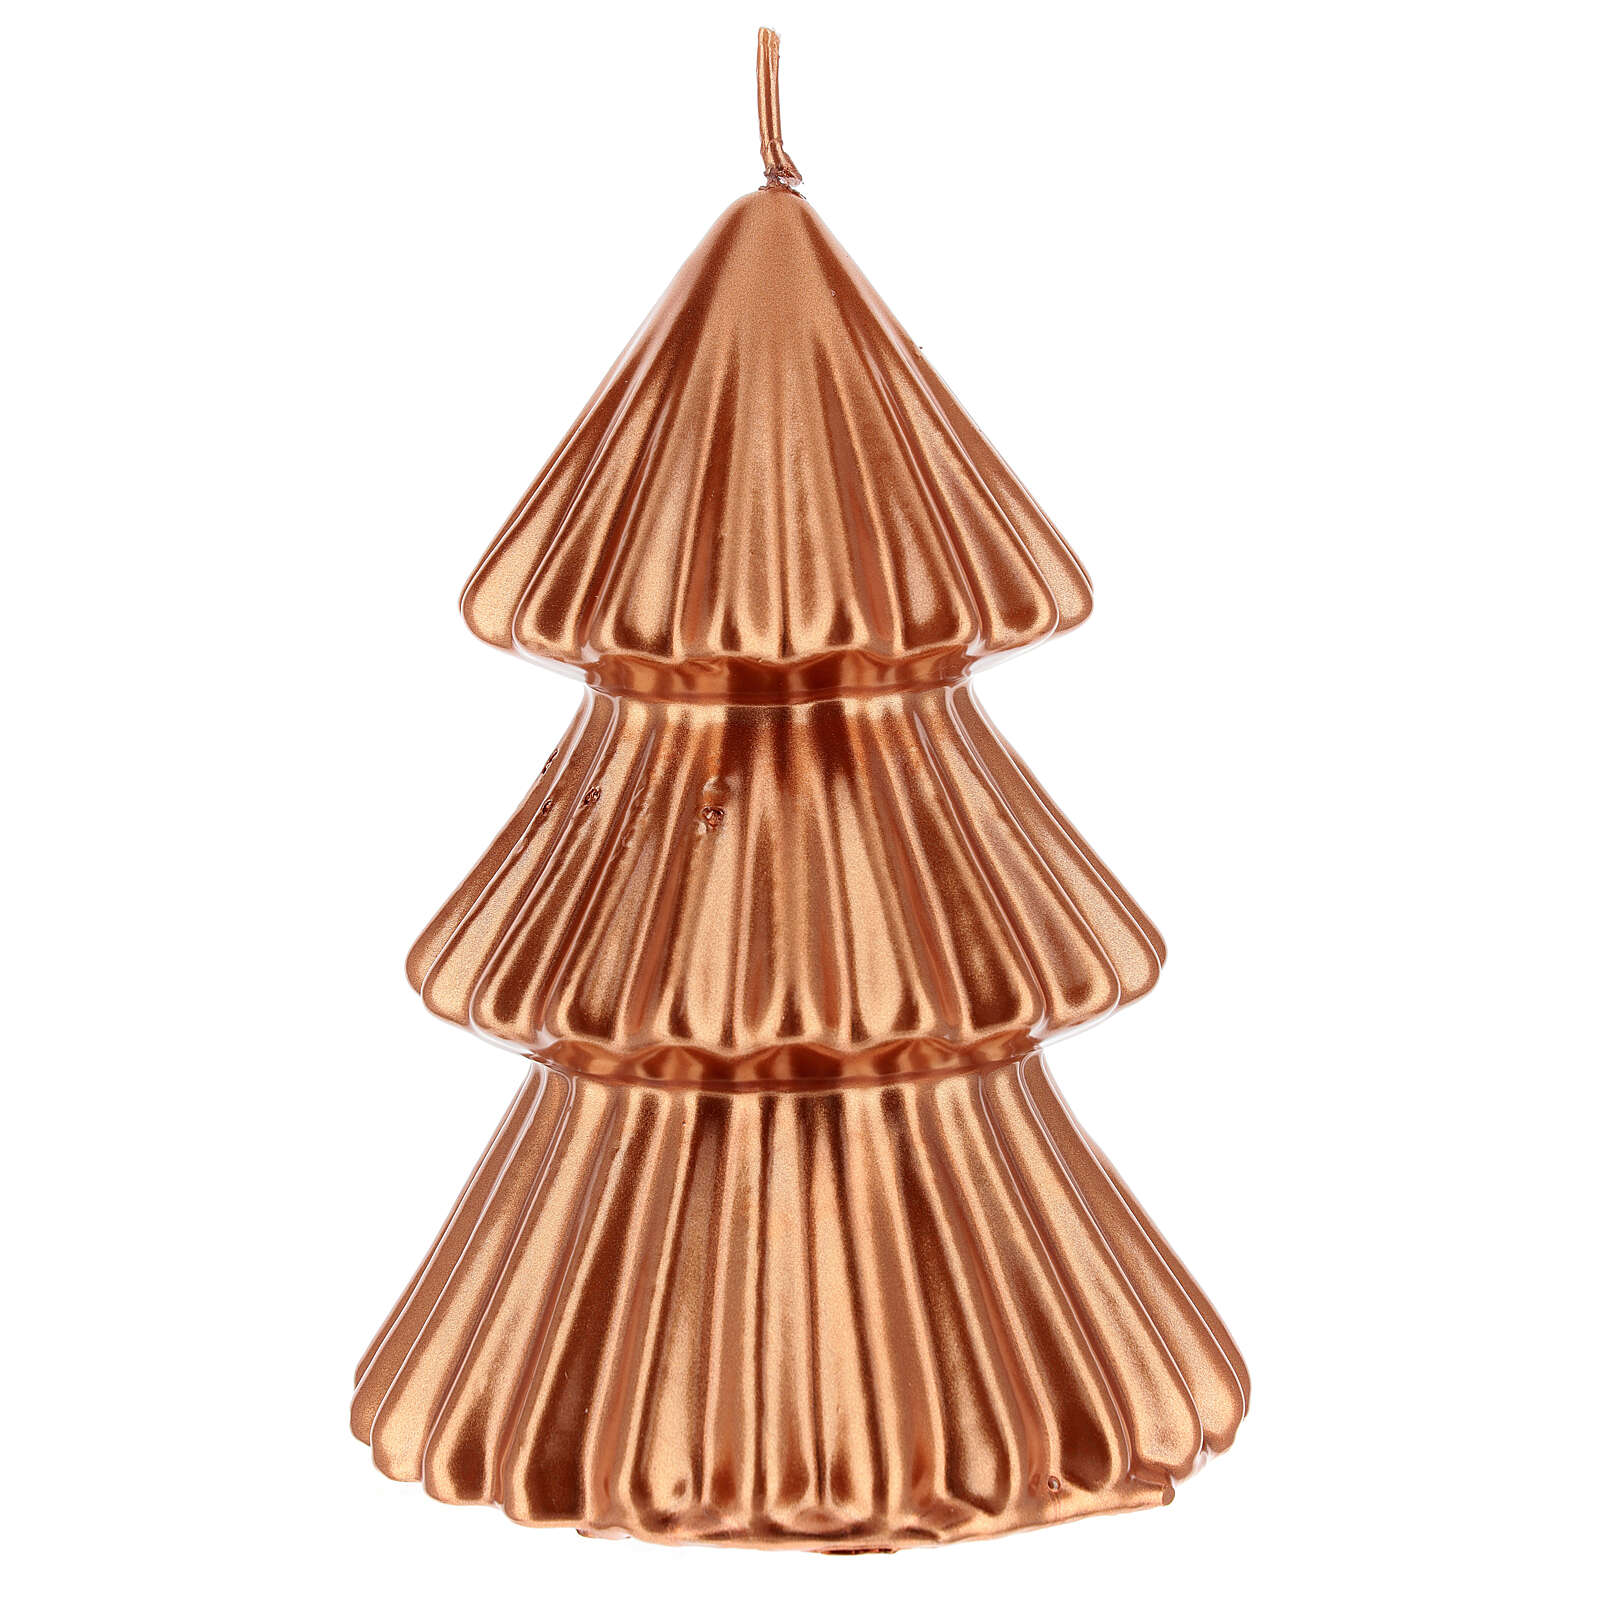 Copper Tokyo Christmas tree candle 7 in 3